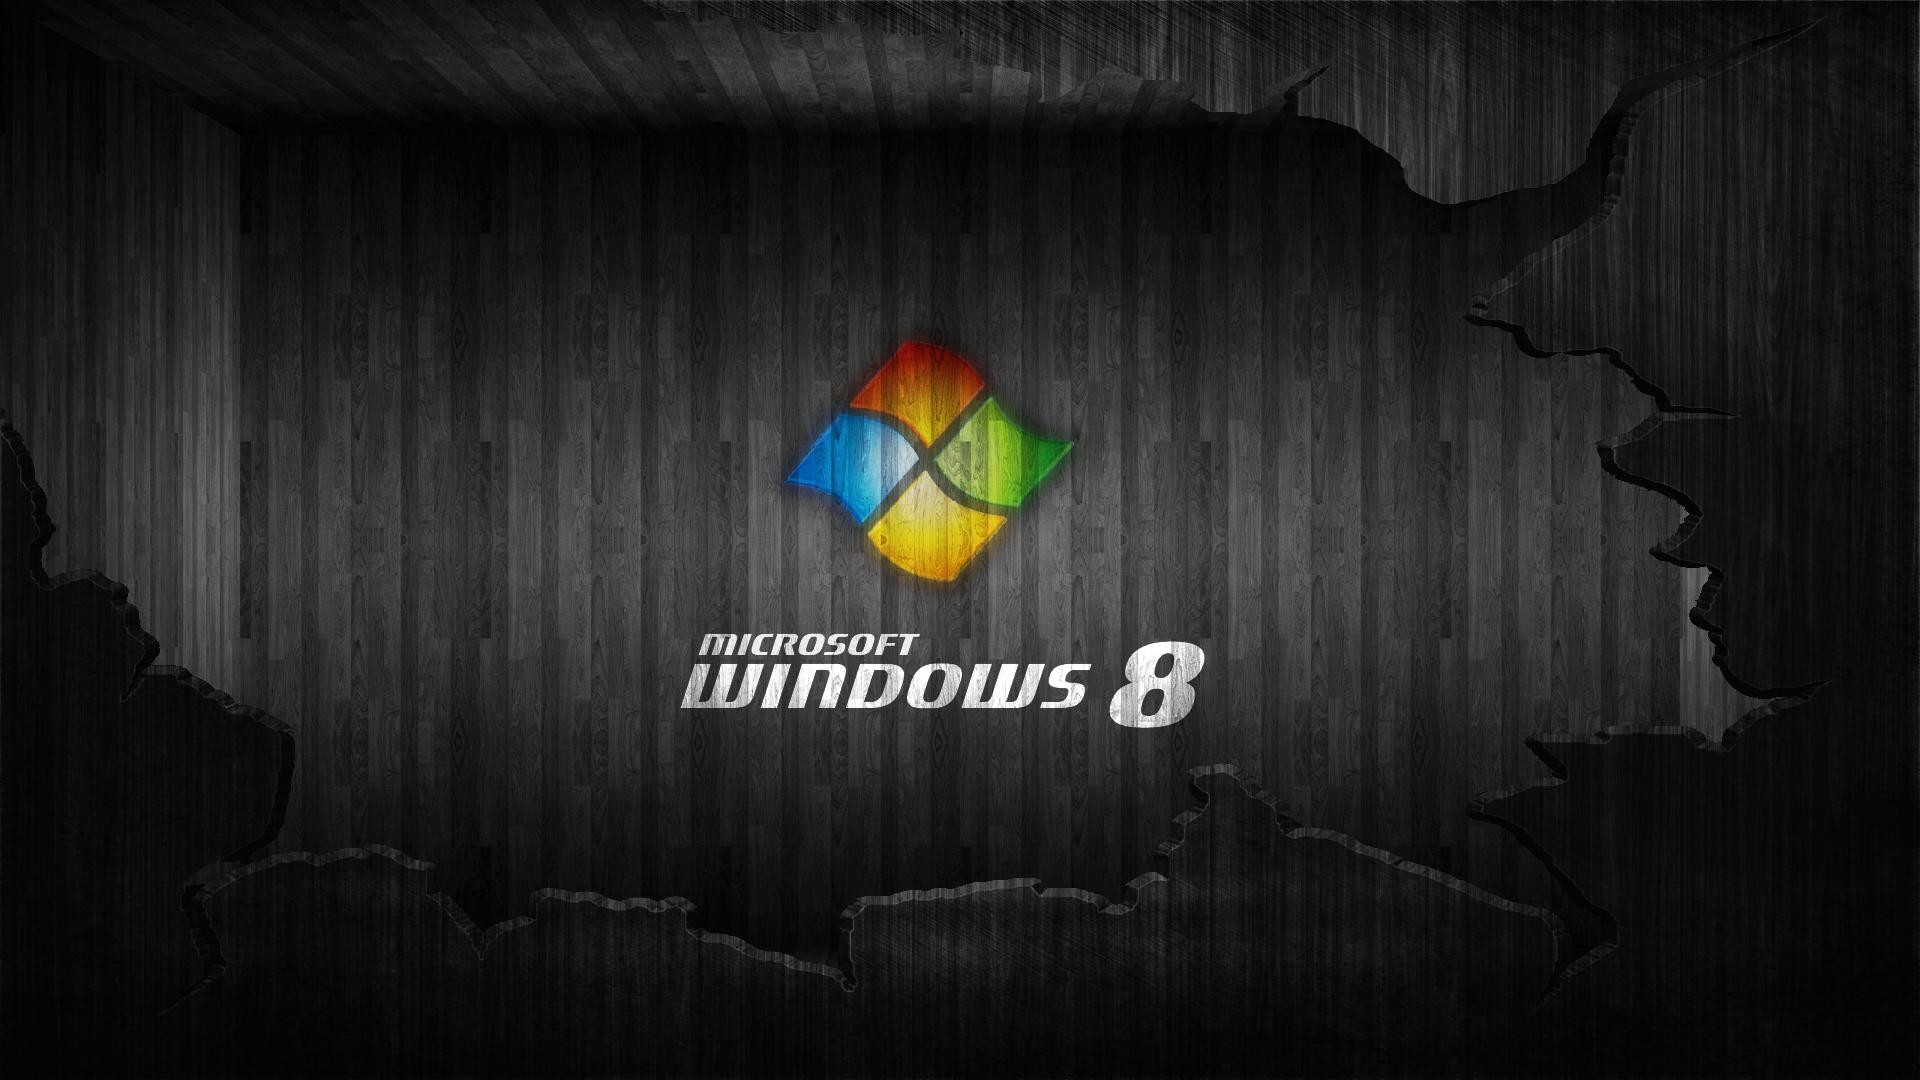 1920x1080 Windows 8 1080p Exclusive HD Wallpapers #2025